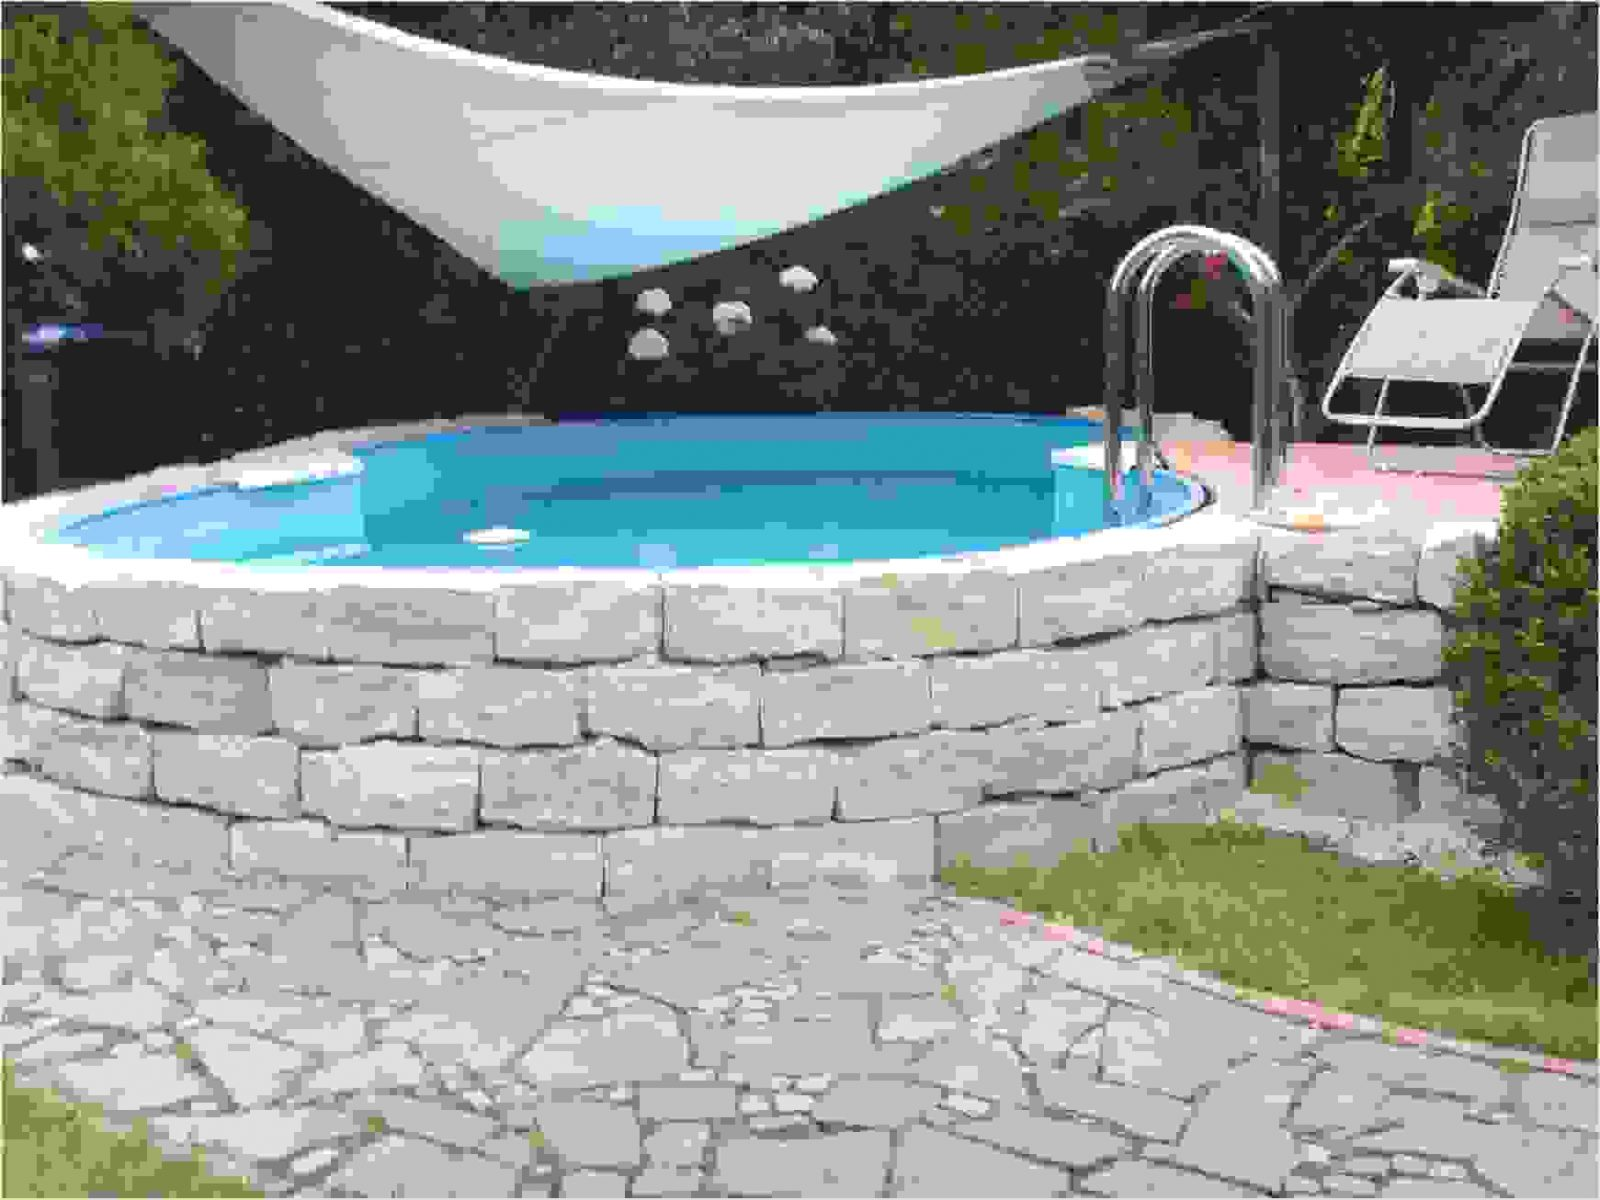 Runder pool im garten designs almo drg von runder pool im for Pool designs under 30000